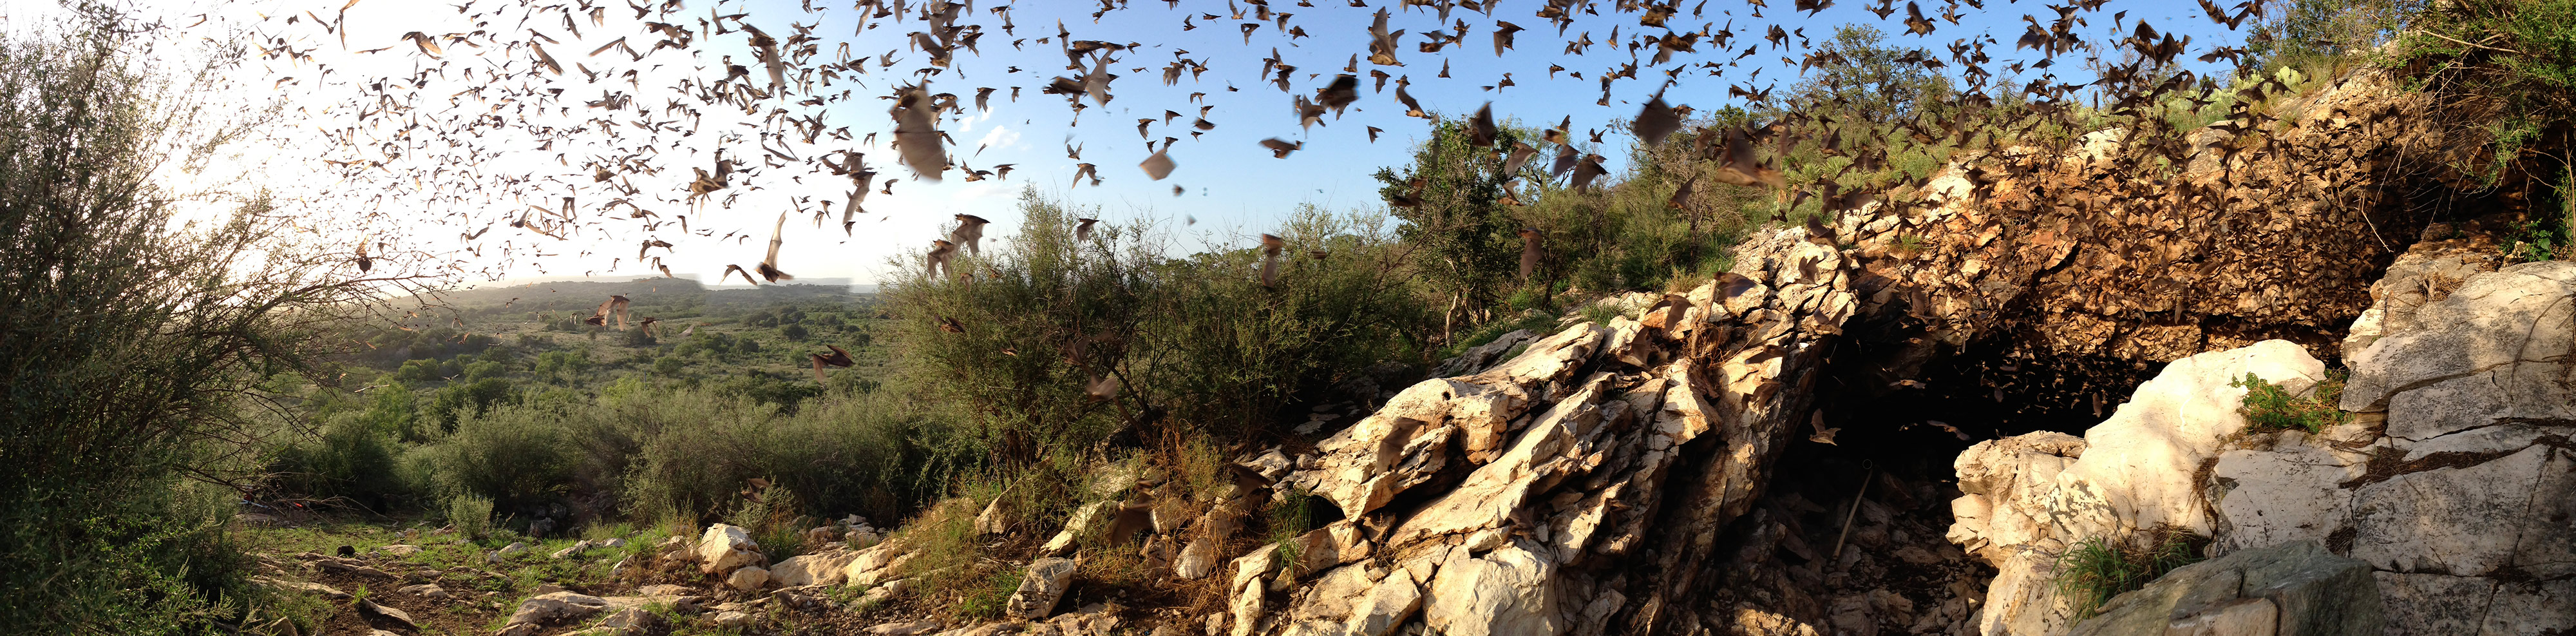 swarms of bats coming from an underground cave, flying away to the distance